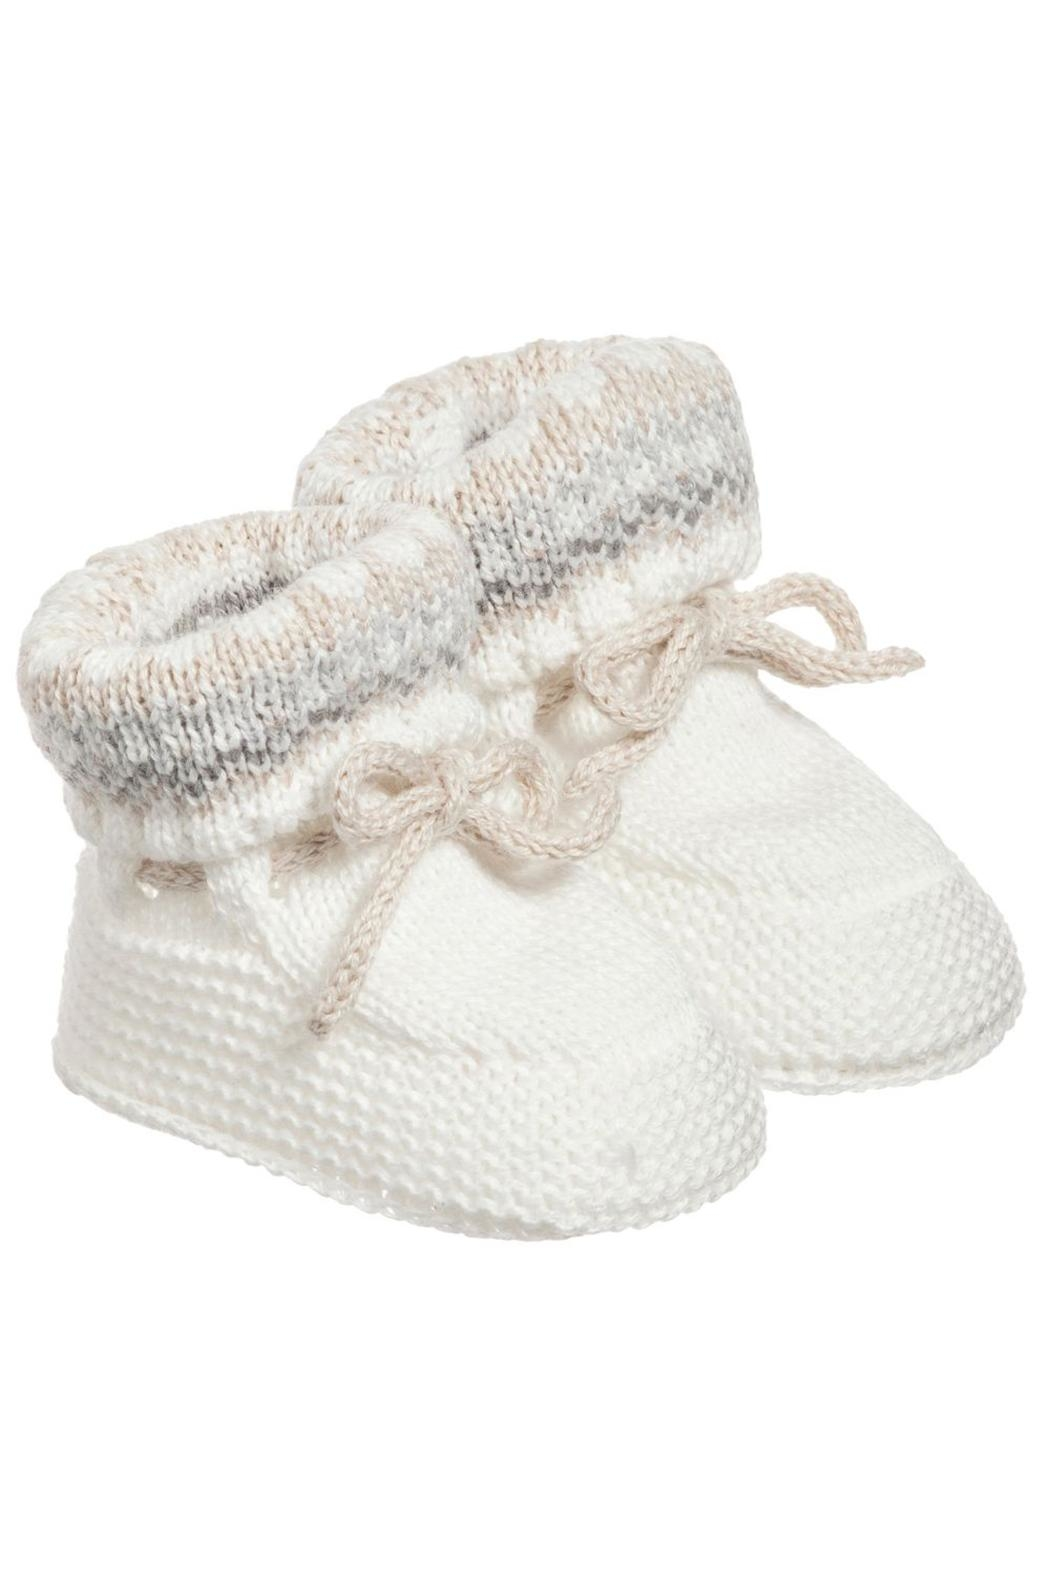 Mayoral Ivory Knit Booties - Side Cropped Image